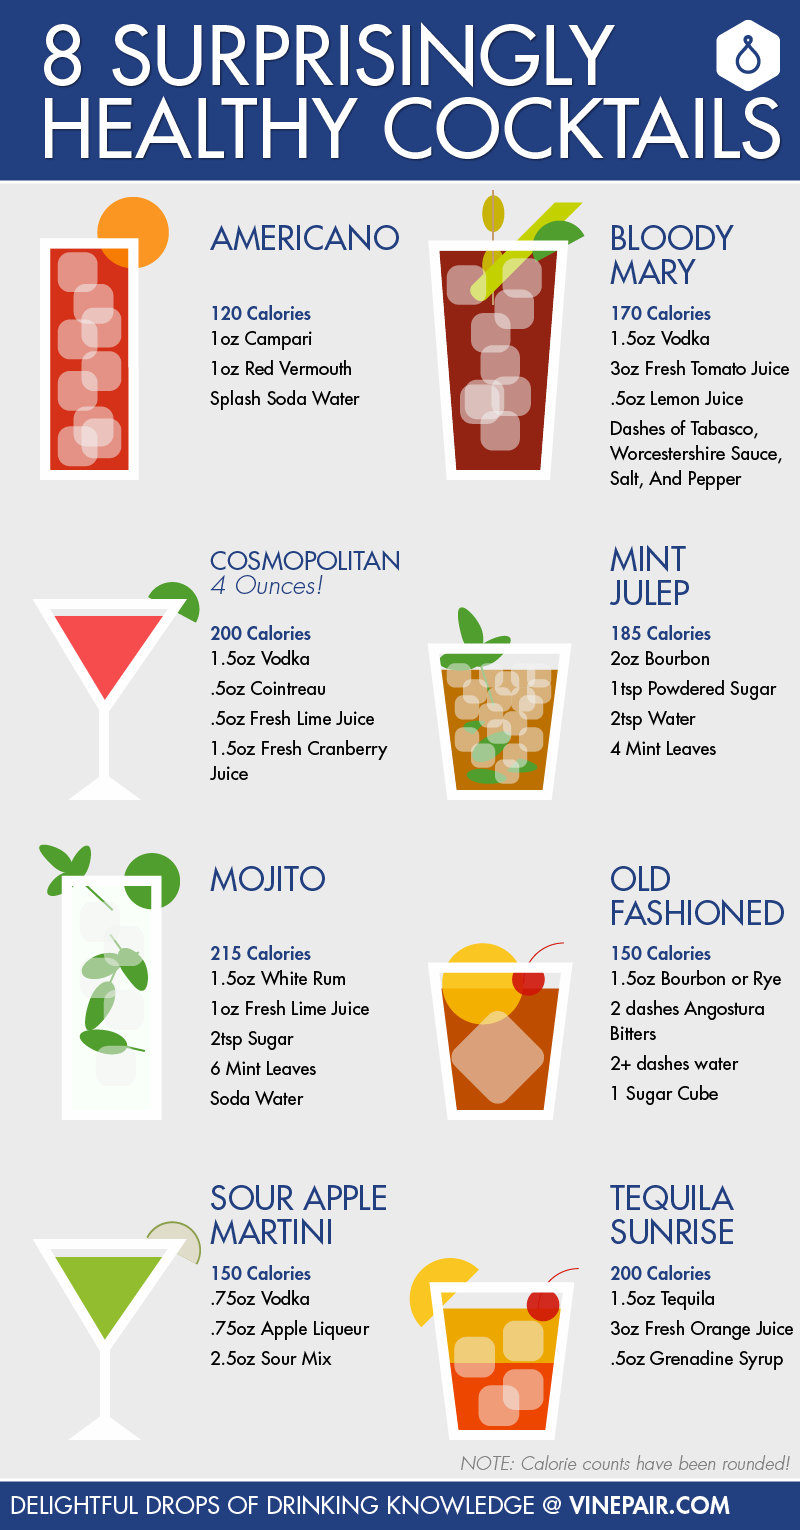 8 Surprisingly Healthy Cocktail Recipes Infographic